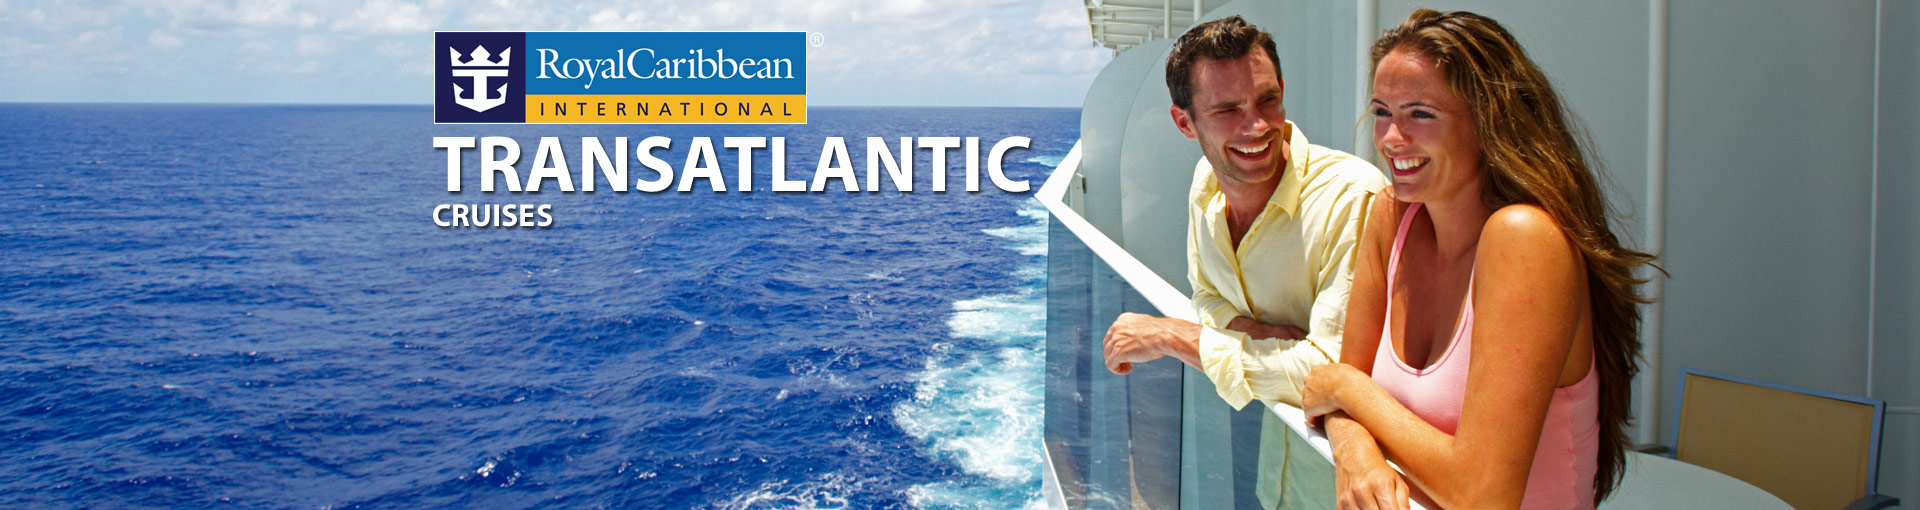 Royal Caribbean Transatlantic Cruises